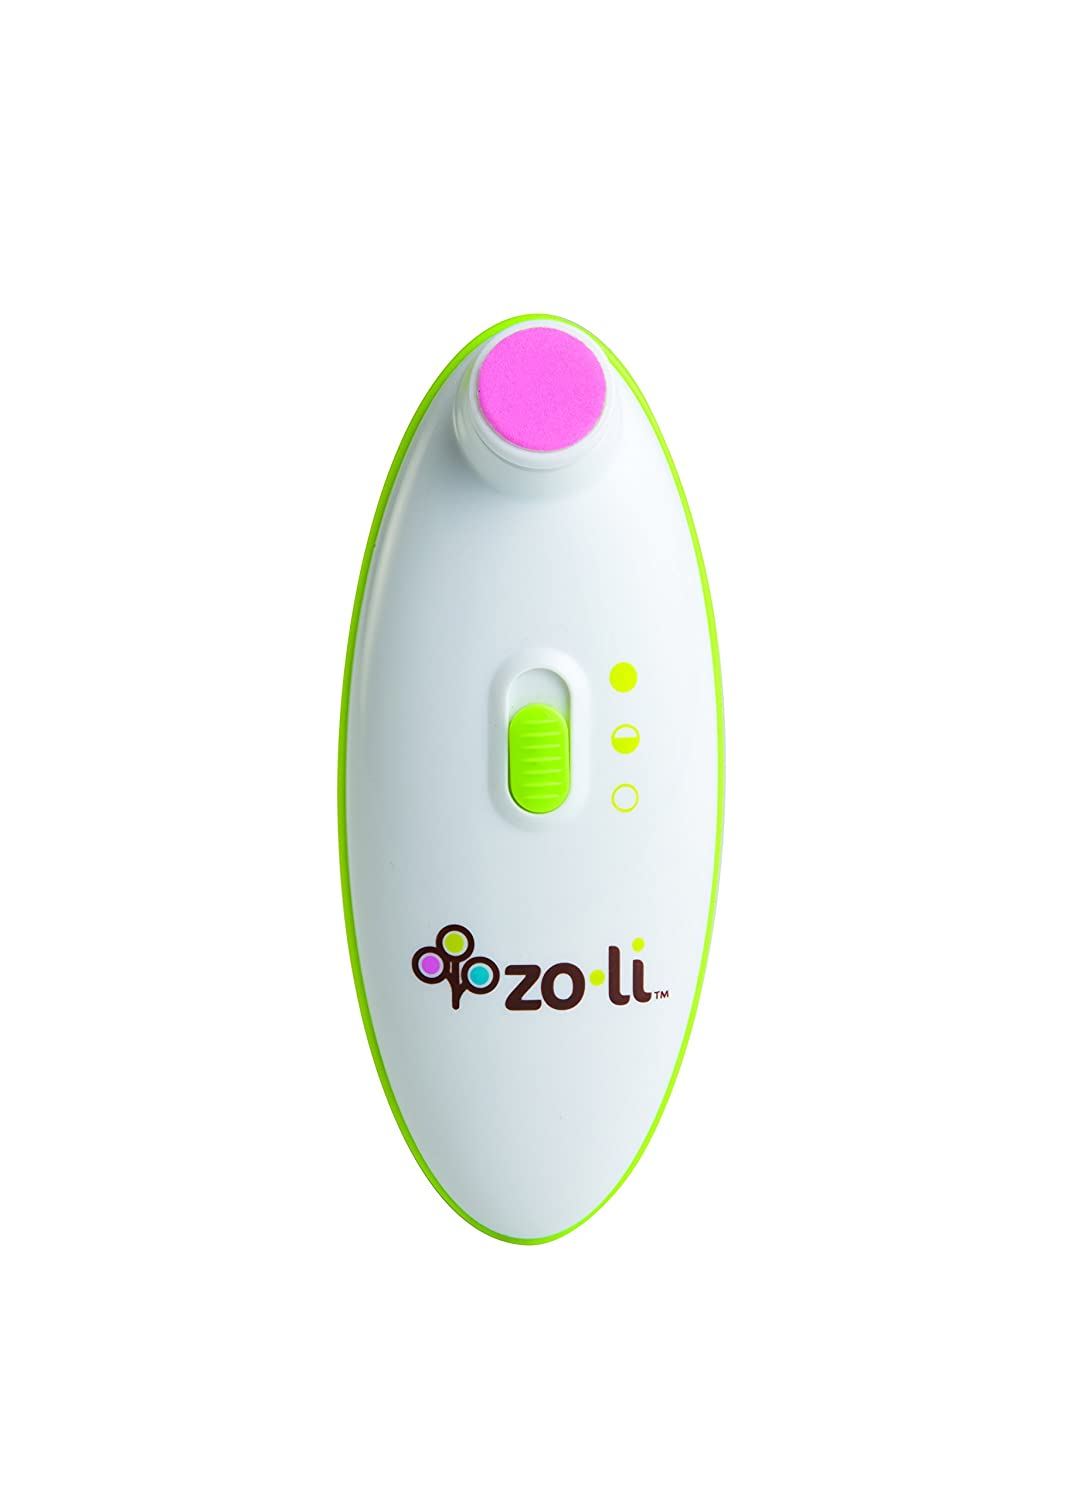 Amazon.com : ZoLi BUZZ B Electric Nail Trimmer : Baby Nail Clippers ...